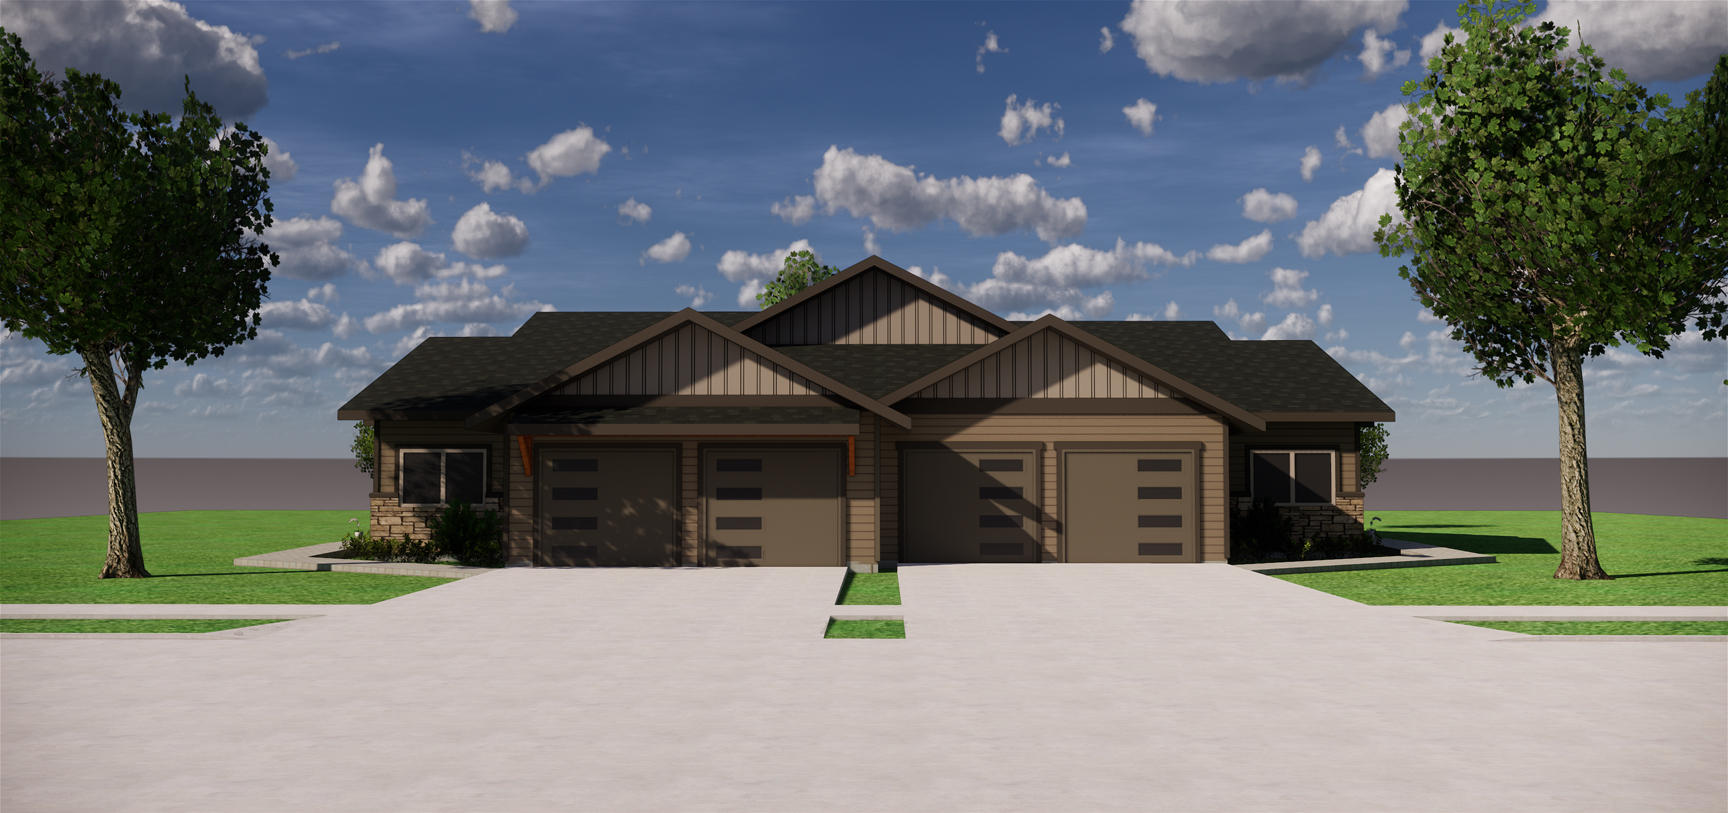 Property Image #8 for MLS #21914346